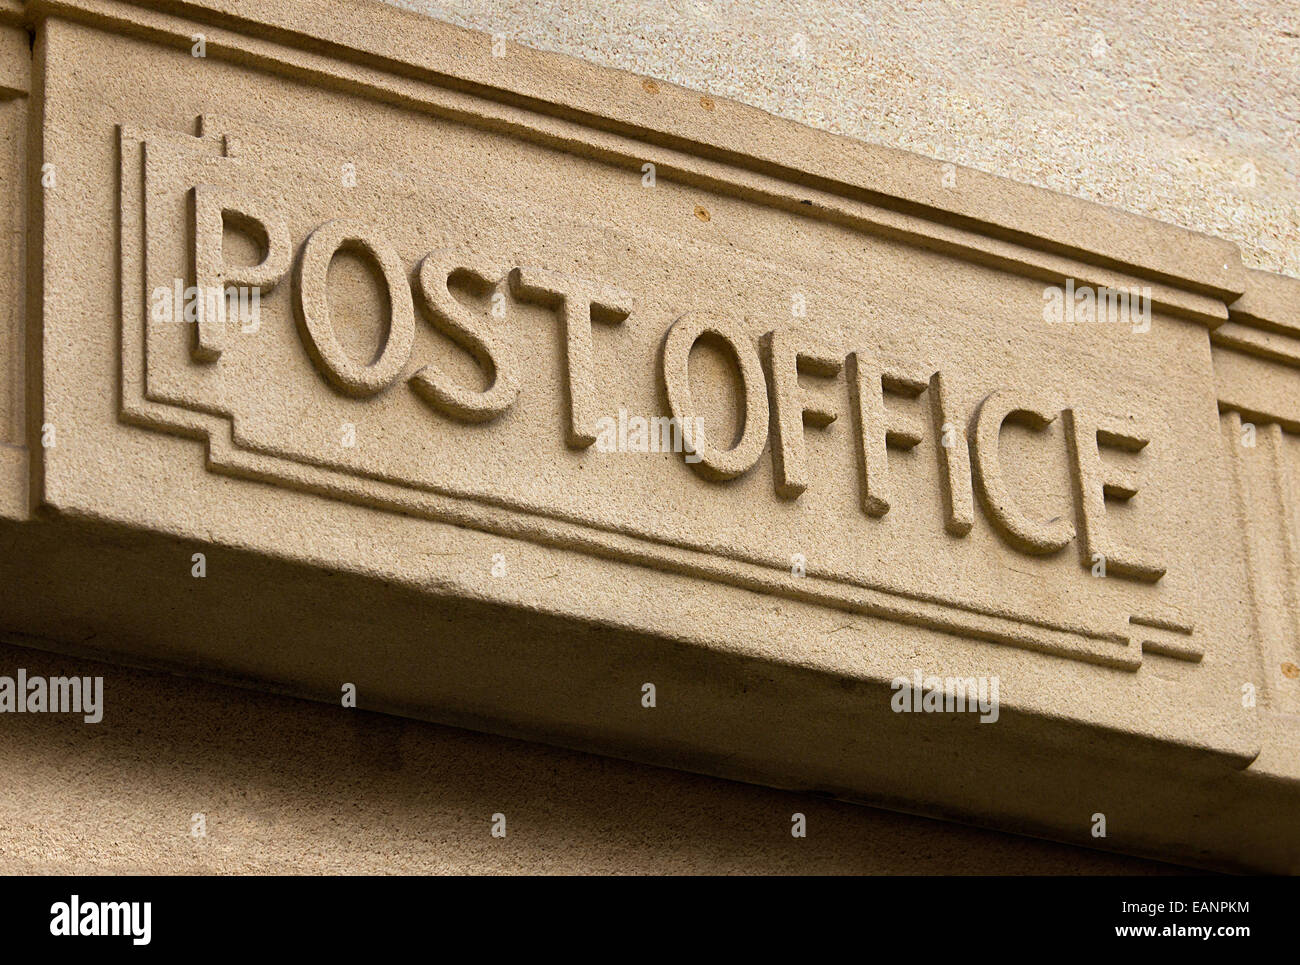 Post Office Building entrance carved in stone above the door of the postal service - Stock Image